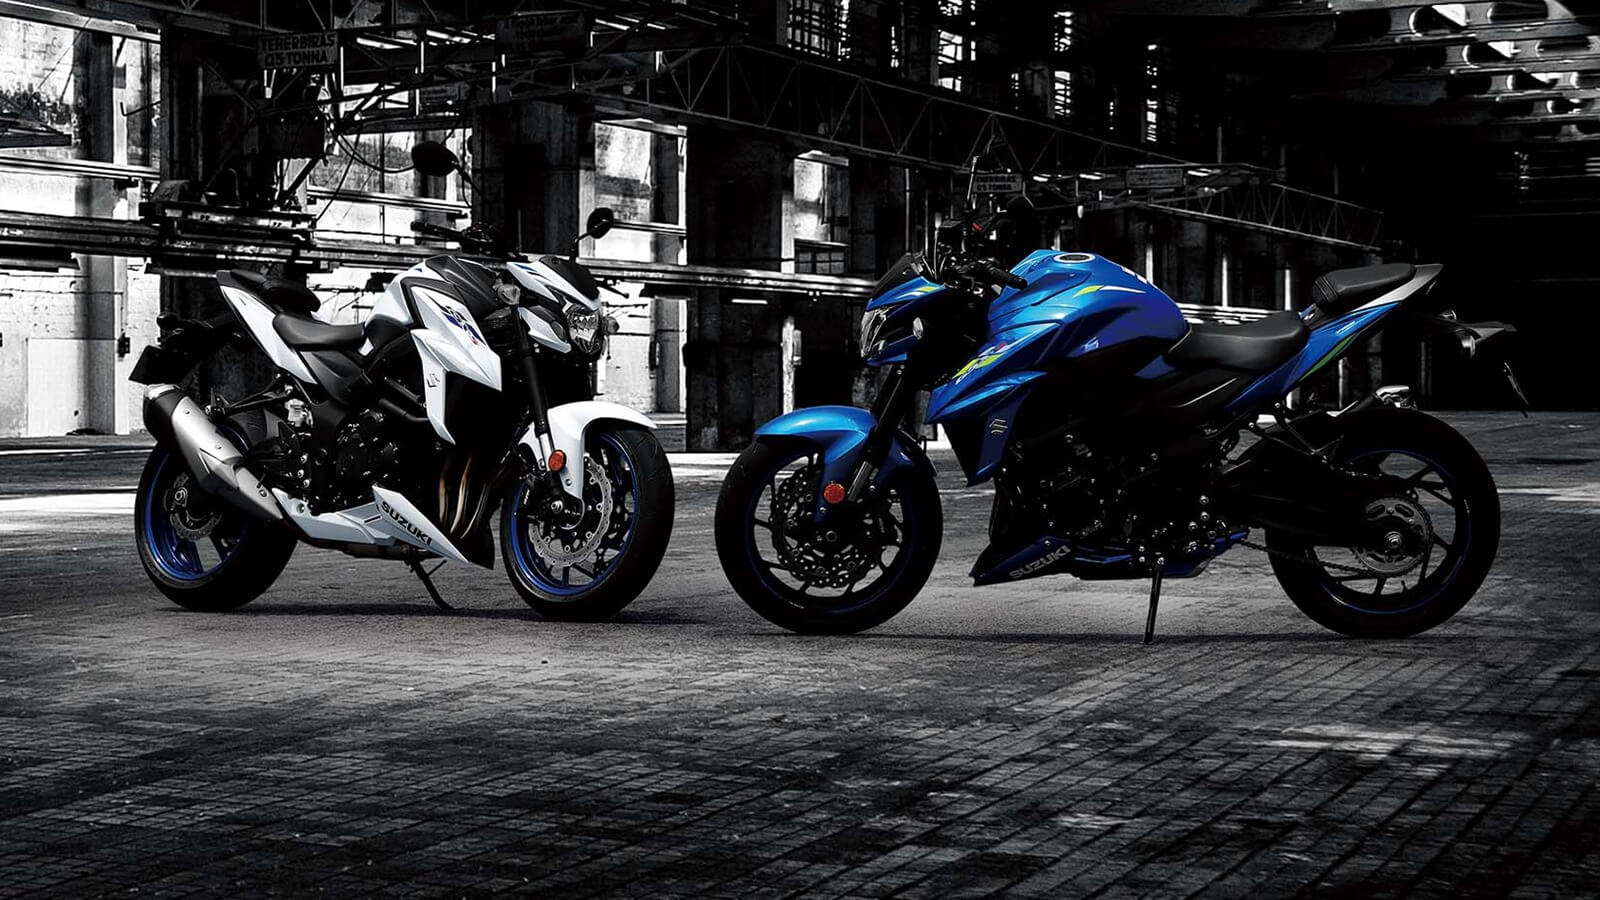 2019 Suzuki GSX-S750 gets new colour option - white